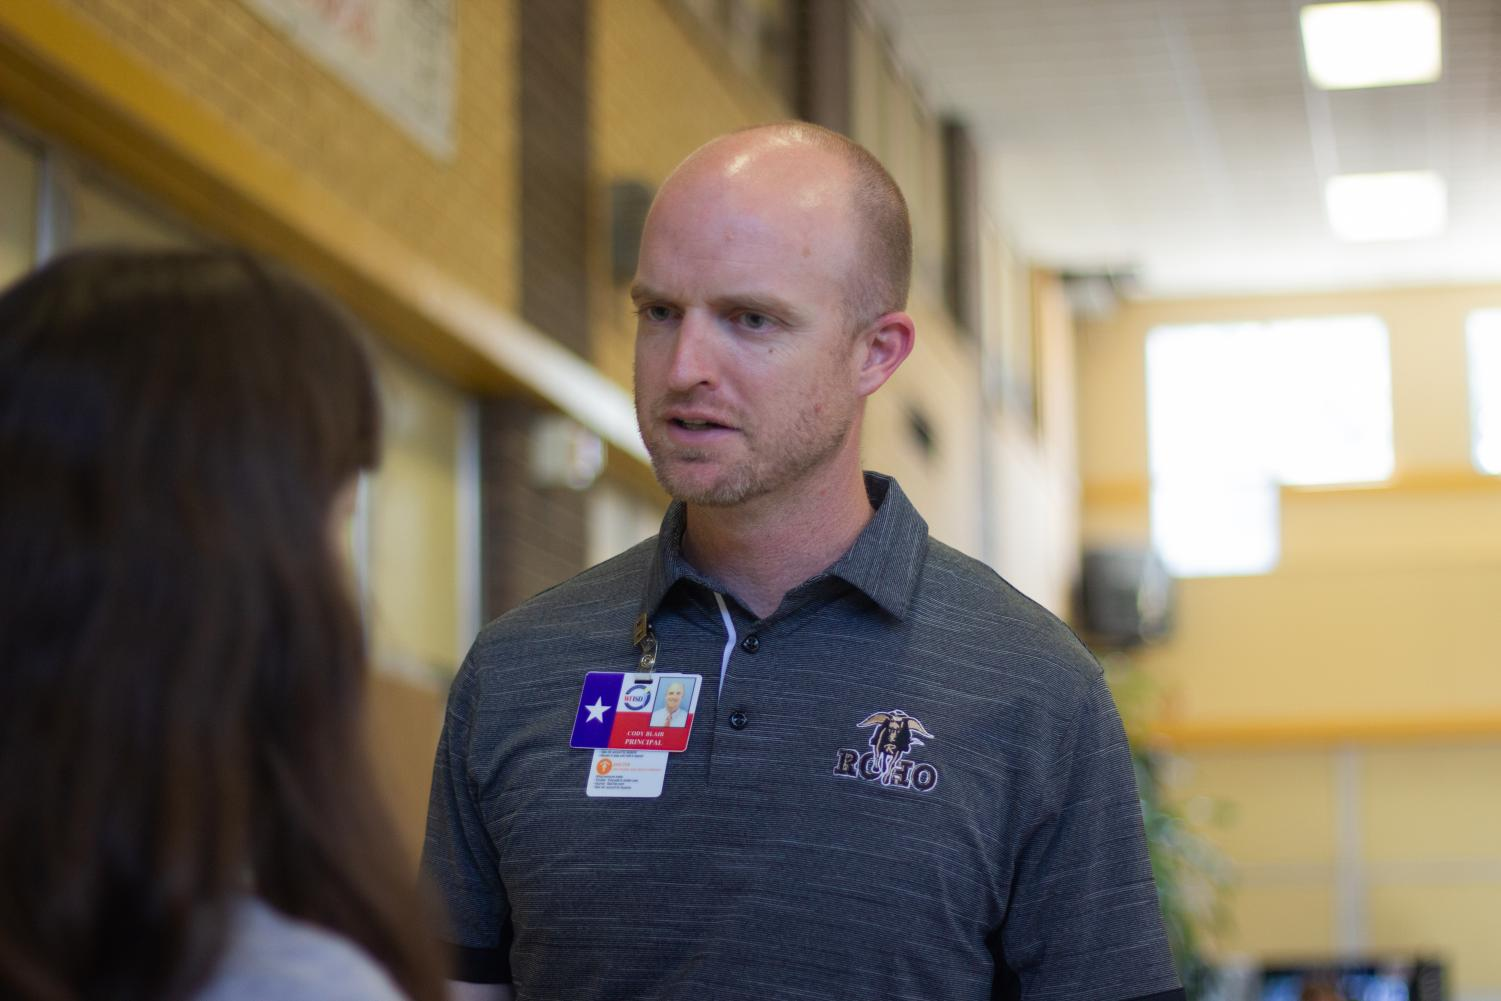 Dr. Cody Blair is looking forward to his second year as the Rider High School principal.